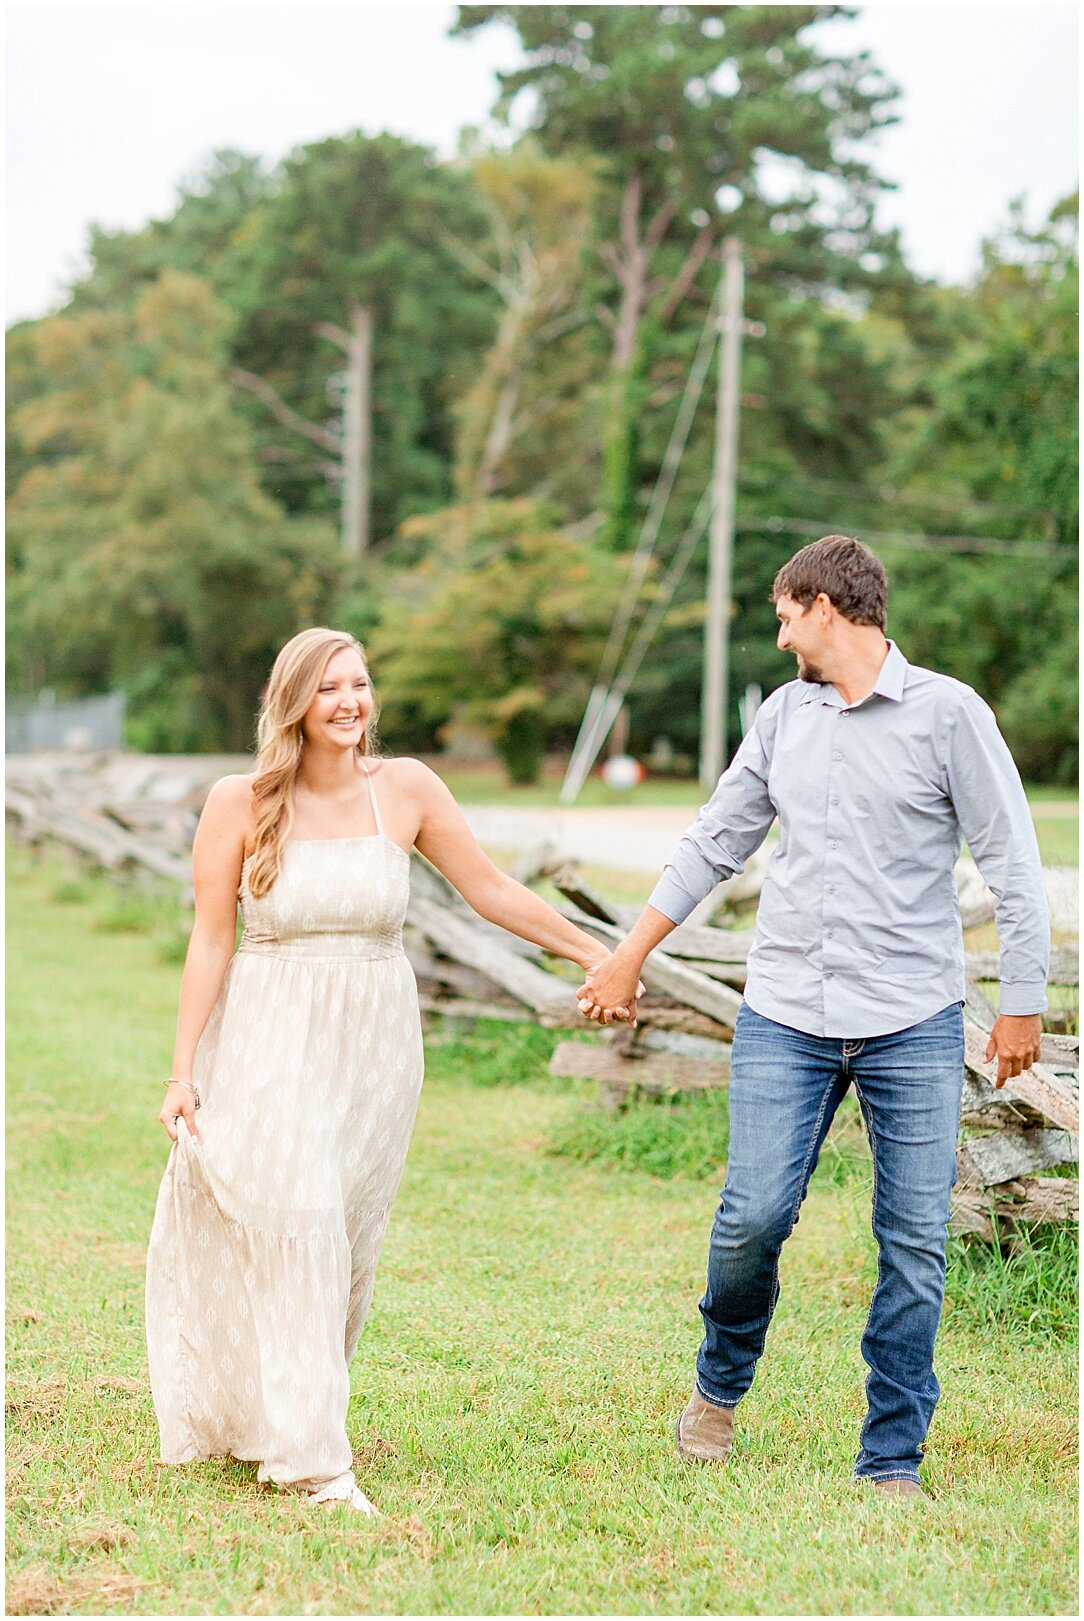 Yorktown Engagement Session - Brooke Waldroup Photogrpahy 07.jpg